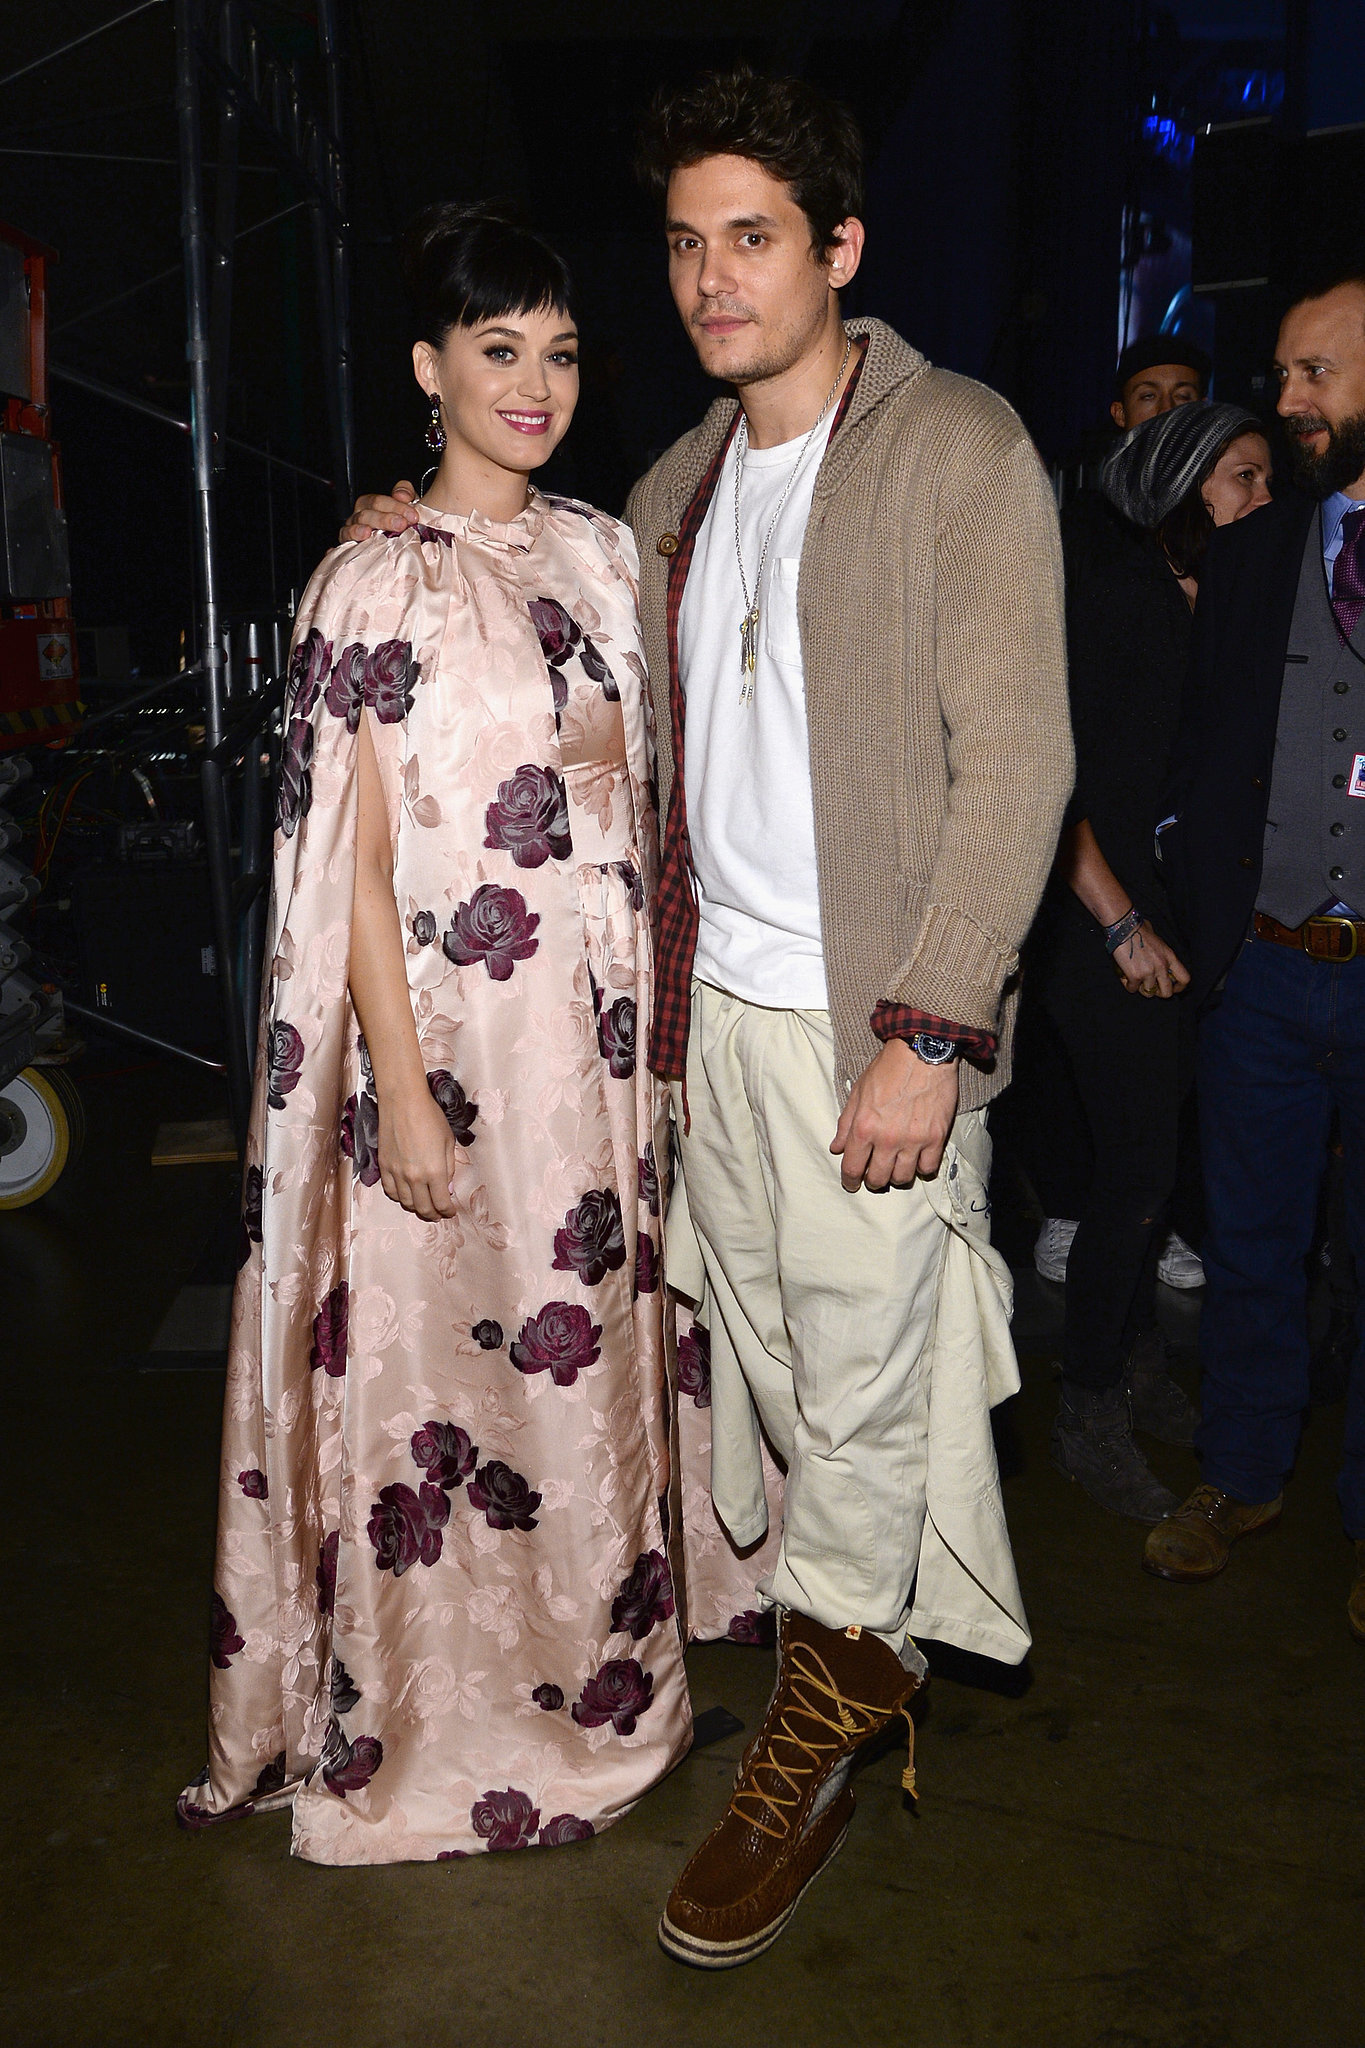 Katy Perry and John Mayer got cozy behind the scenes.